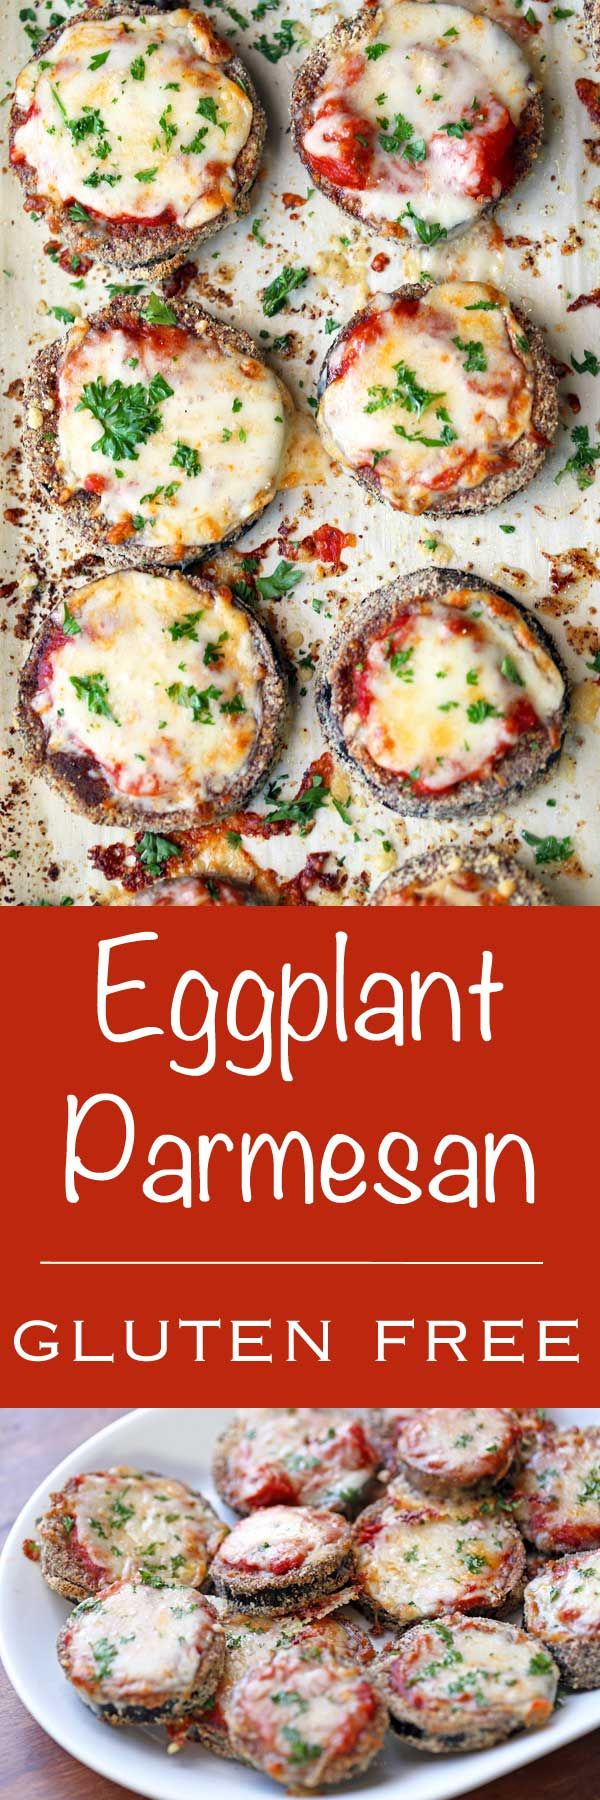 An easy recipe for healthy and gluten free eggplant Parmesan. No need for frying! This eggplant Parmesan is baked in your oven.